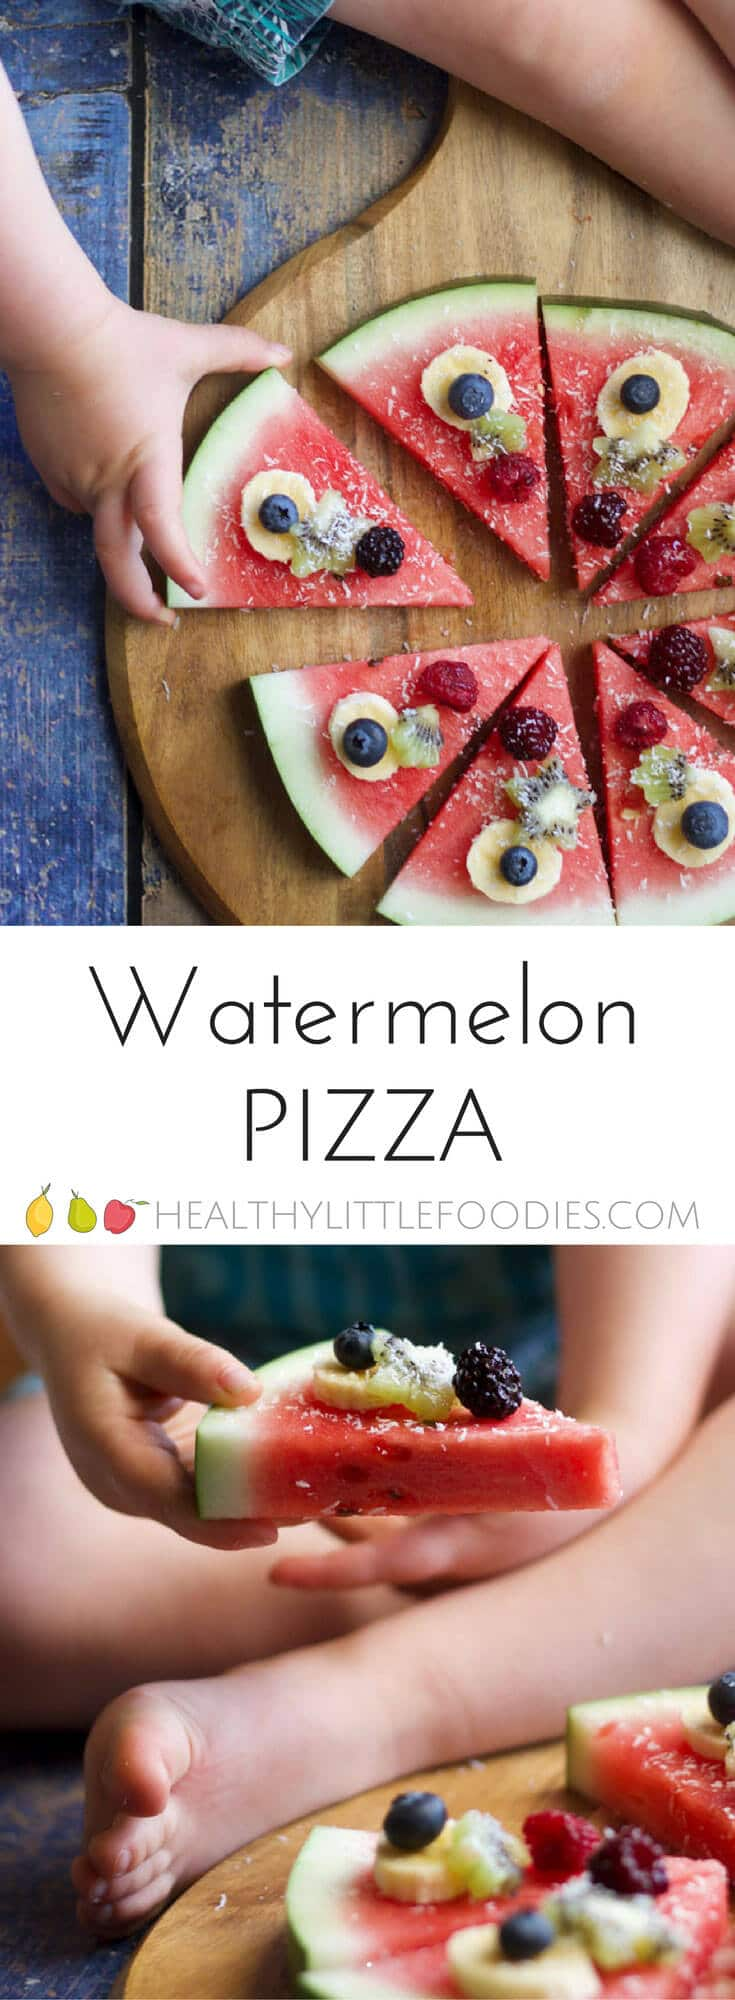 watermelon pizza is a refreshing, fun and healthy snack / dessert for kids. Let kids choose their toppings.